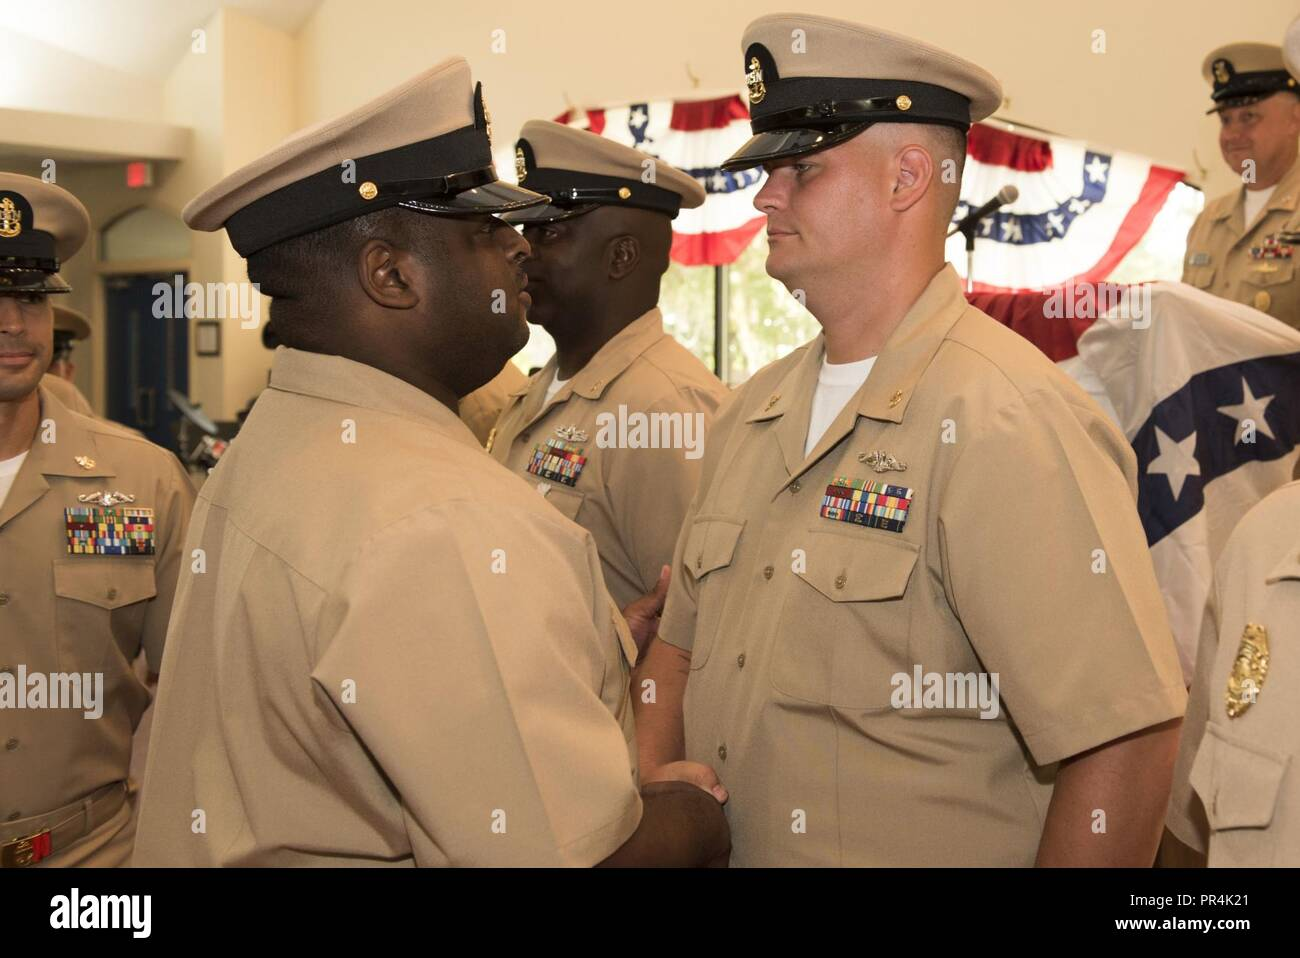 KINGS BAY, Georgia (Sept. 14, 2018) Chief Culinary Specialist (Submarines) Seth Smith is congratulated by his sponsor during Naval Submarine Base Kings Bay's 2018 chief petty officer pinning ceremony.  The base is home to six of the Ohio-class ballistic-missile submarines that make up the most survivable leg of the nuclear missile triad. - Stock Image